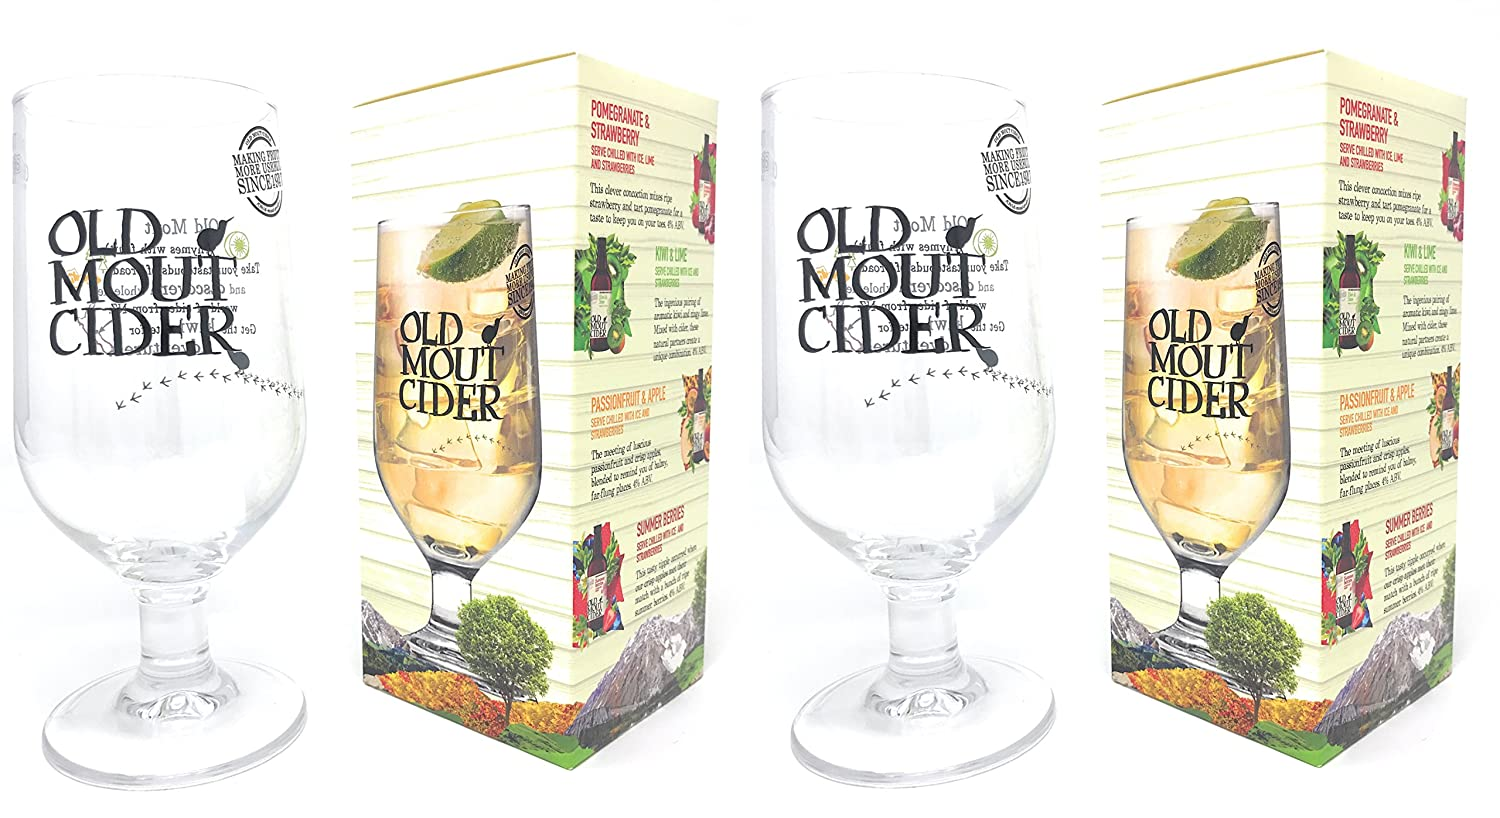 2 x Old Mout Cider Pint Glasses in Official Branded Gift Boxes (2 Glasses) Arc International Plc